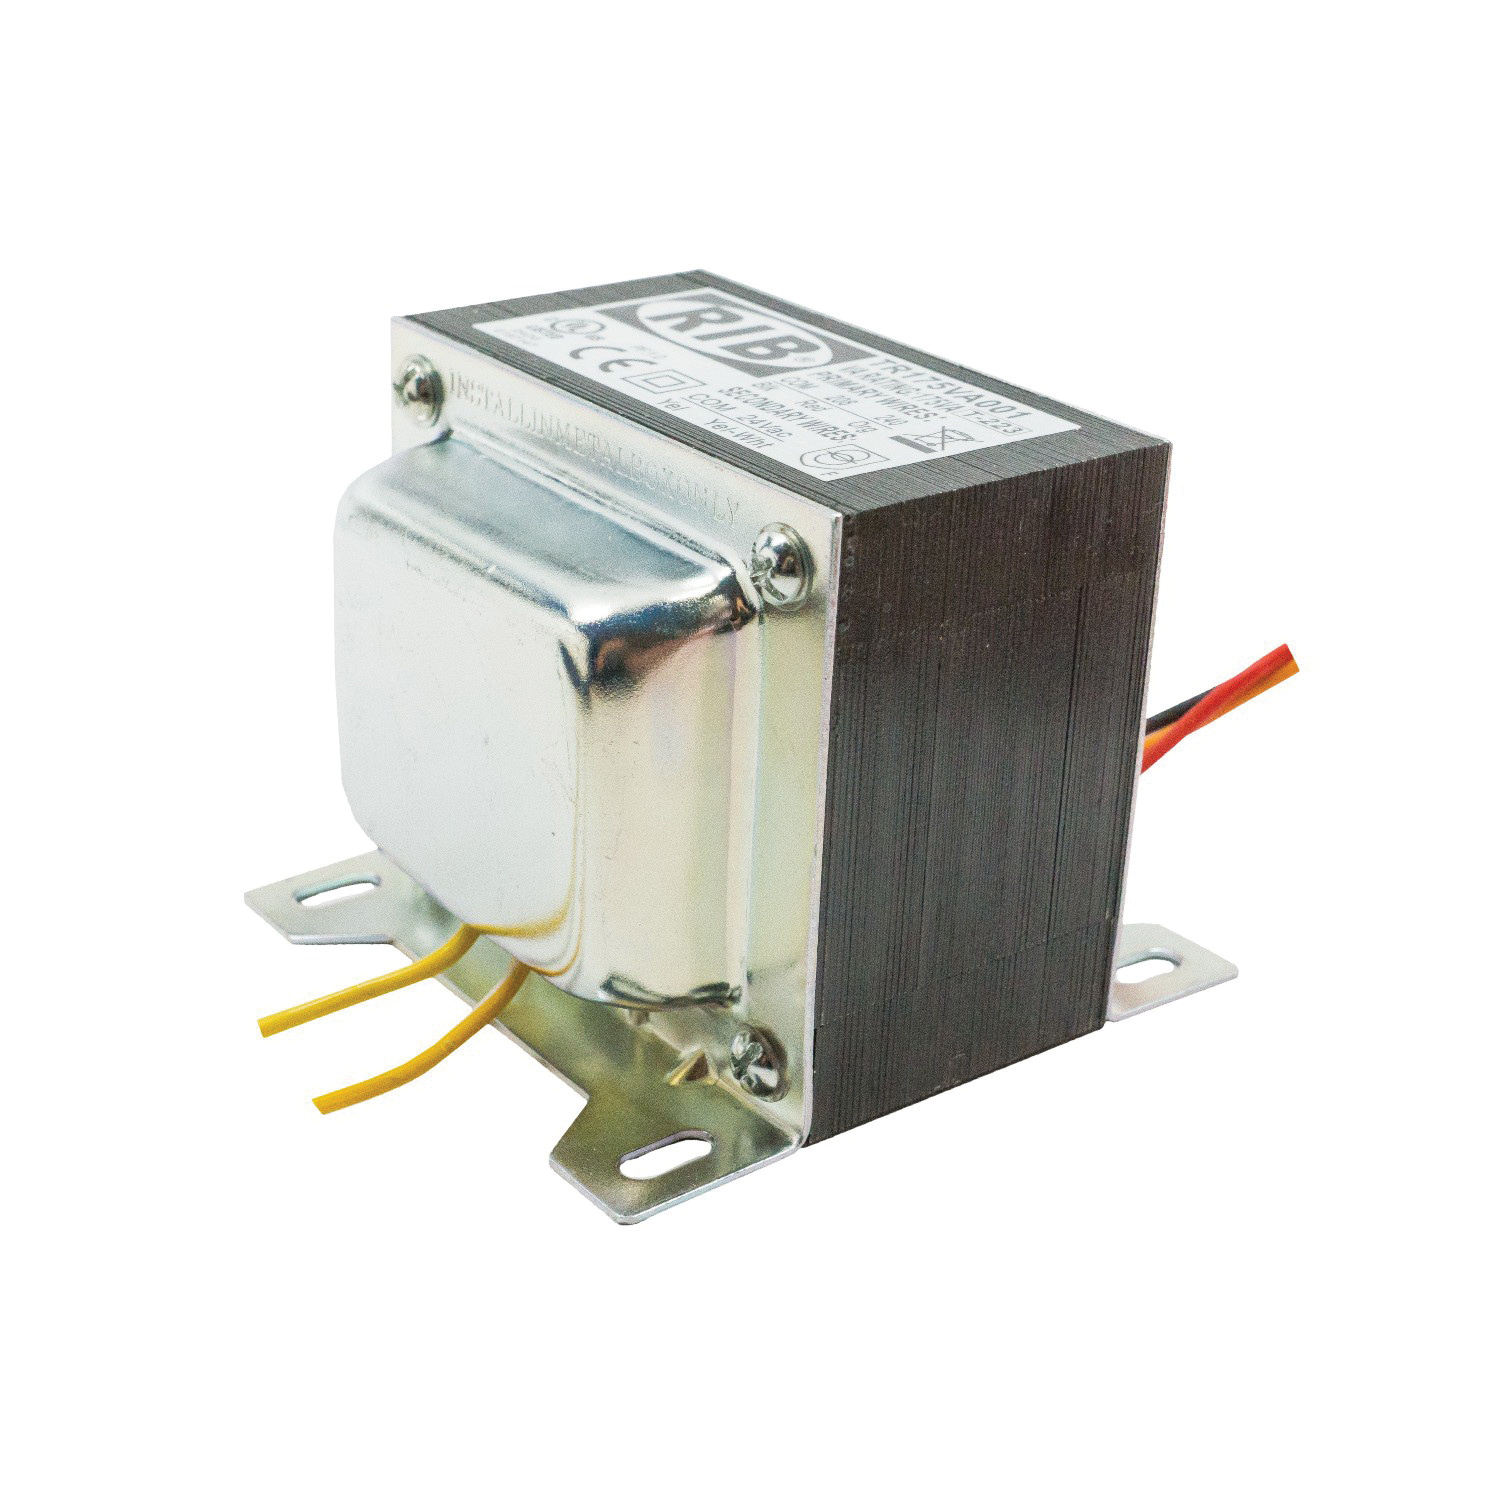 functional device tr175va001 1-phase dual bottom opening control transformer  240/208-volt